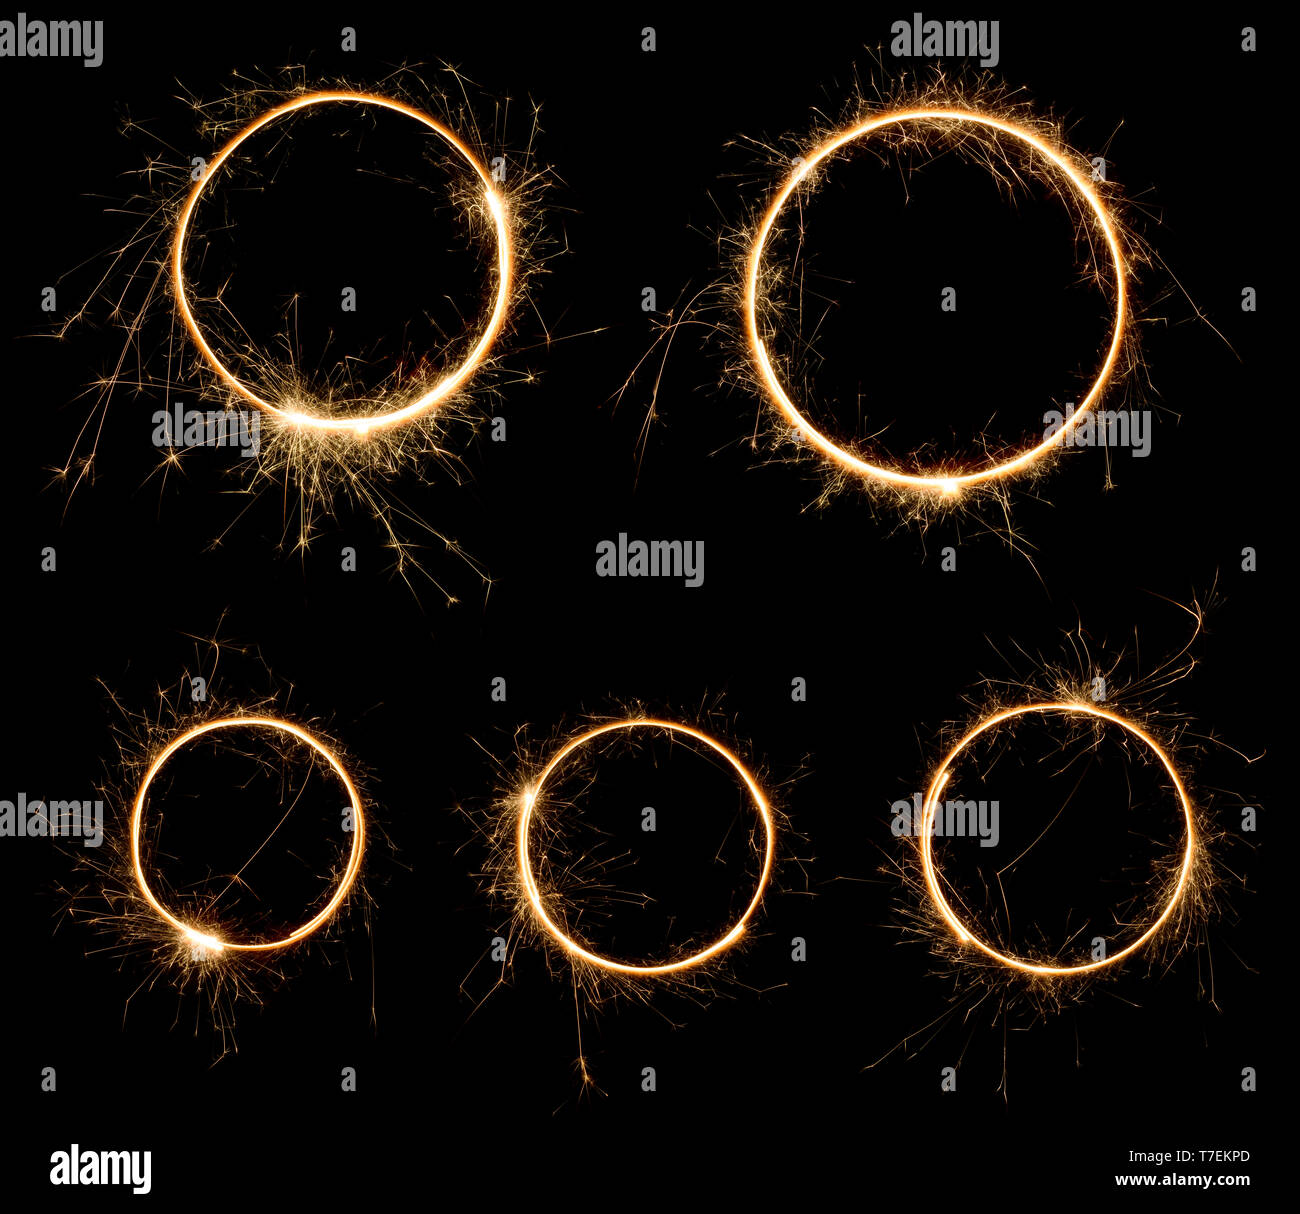 Sparklers rings isolated on black. Set of burning bengal fire long exposure circles. - Stock Image